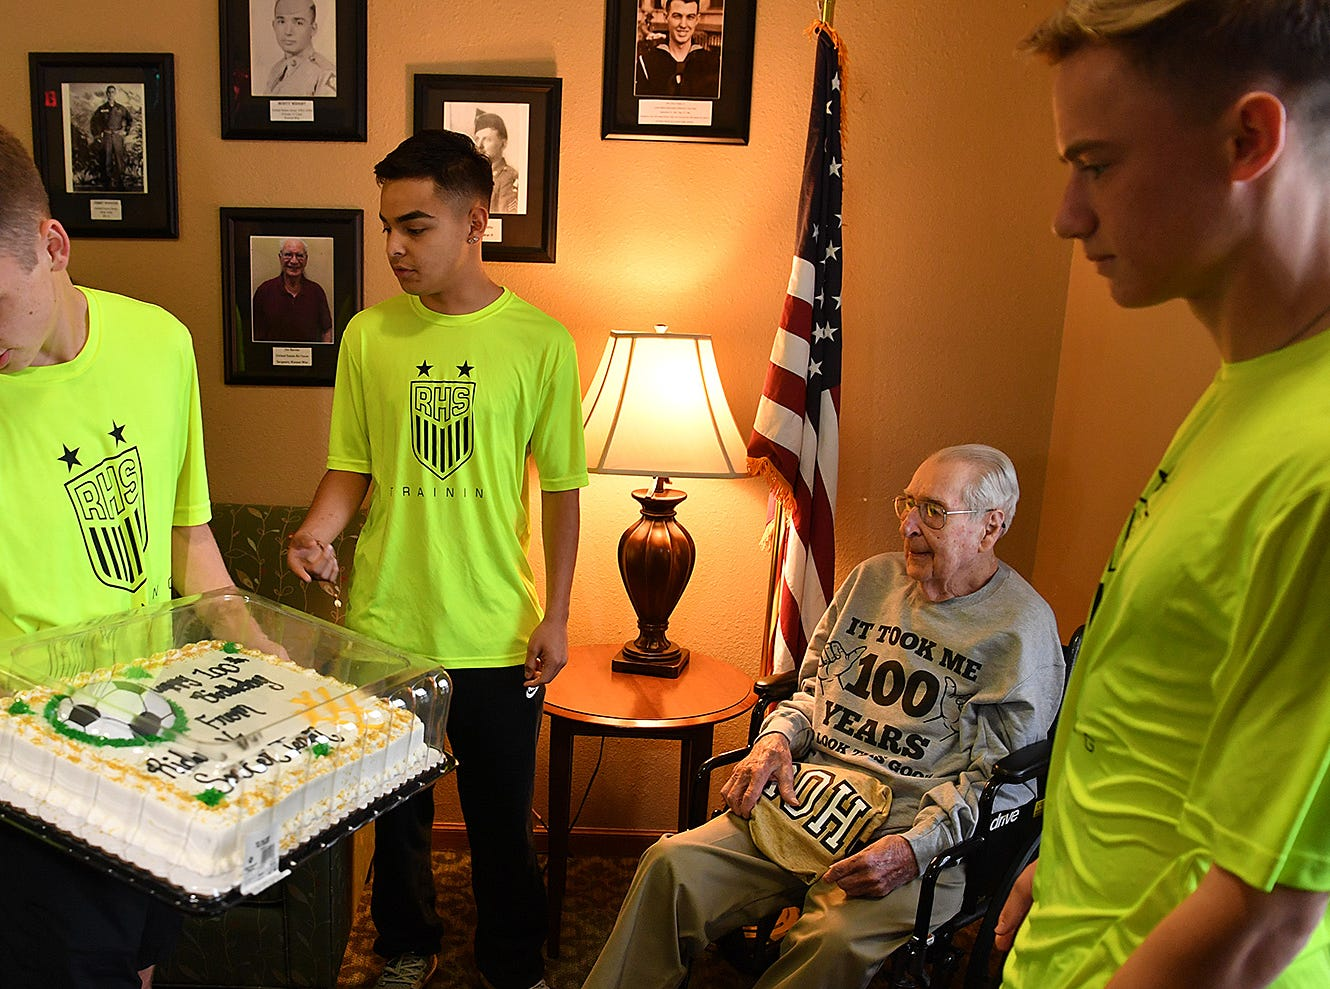 The Rider High School soccer team visited World War II veteran Joe Cuba Wednesday, bringing a cake, t-shirt, flowers and balloons for his 100th birthday. Cuba's family requested on social media for him to receive 100 cards for his 100th birthday and he's received approximately 16,000.